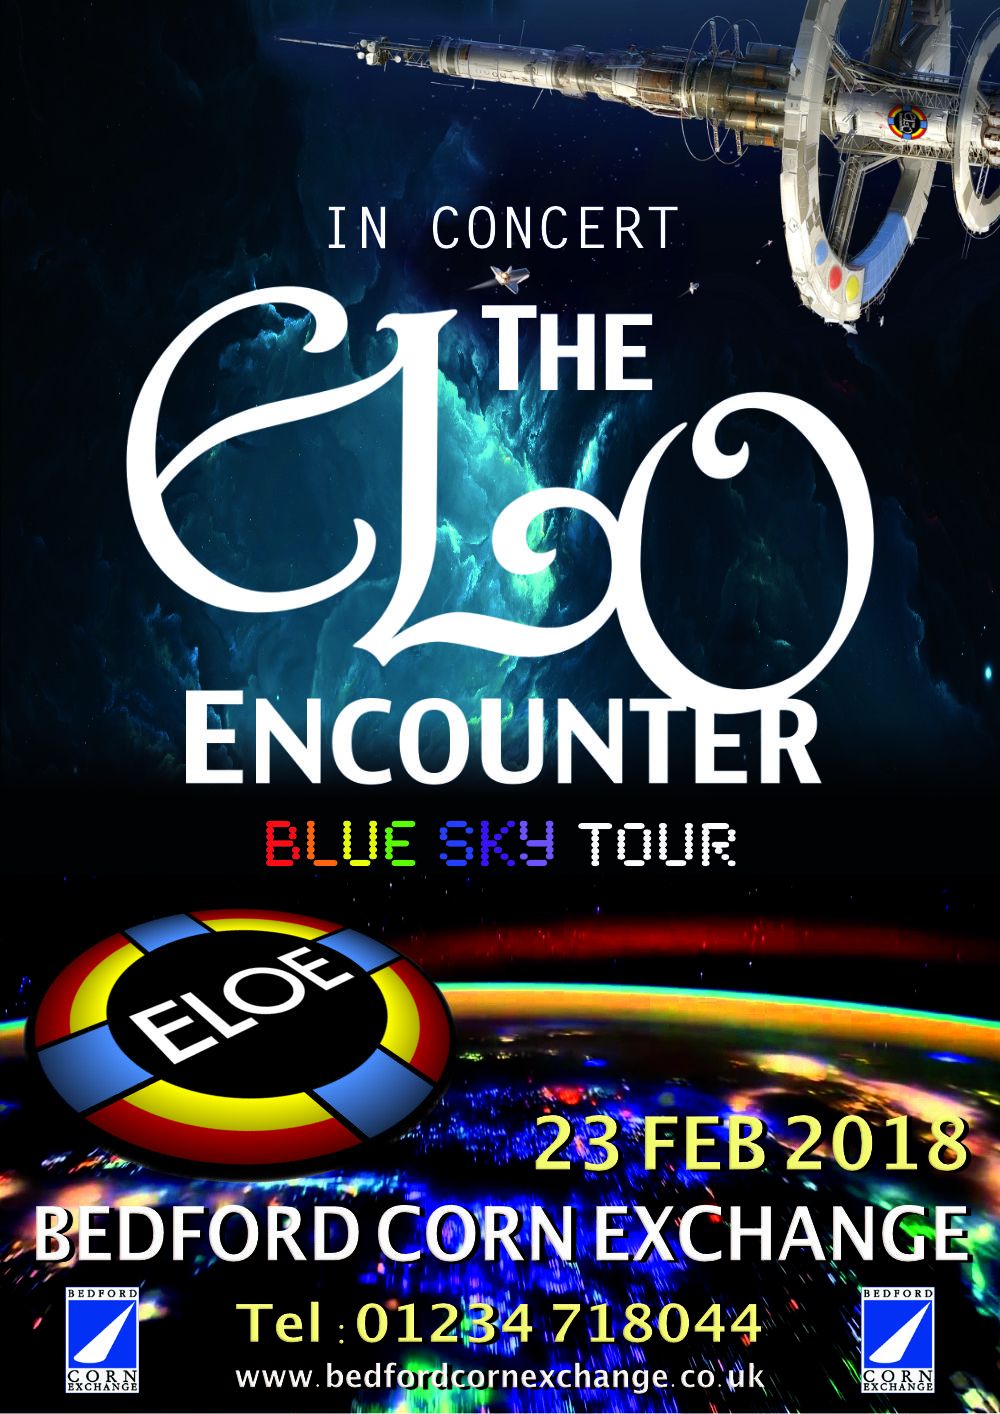 Bedford Corn Exchange - ELO Encounter Poster